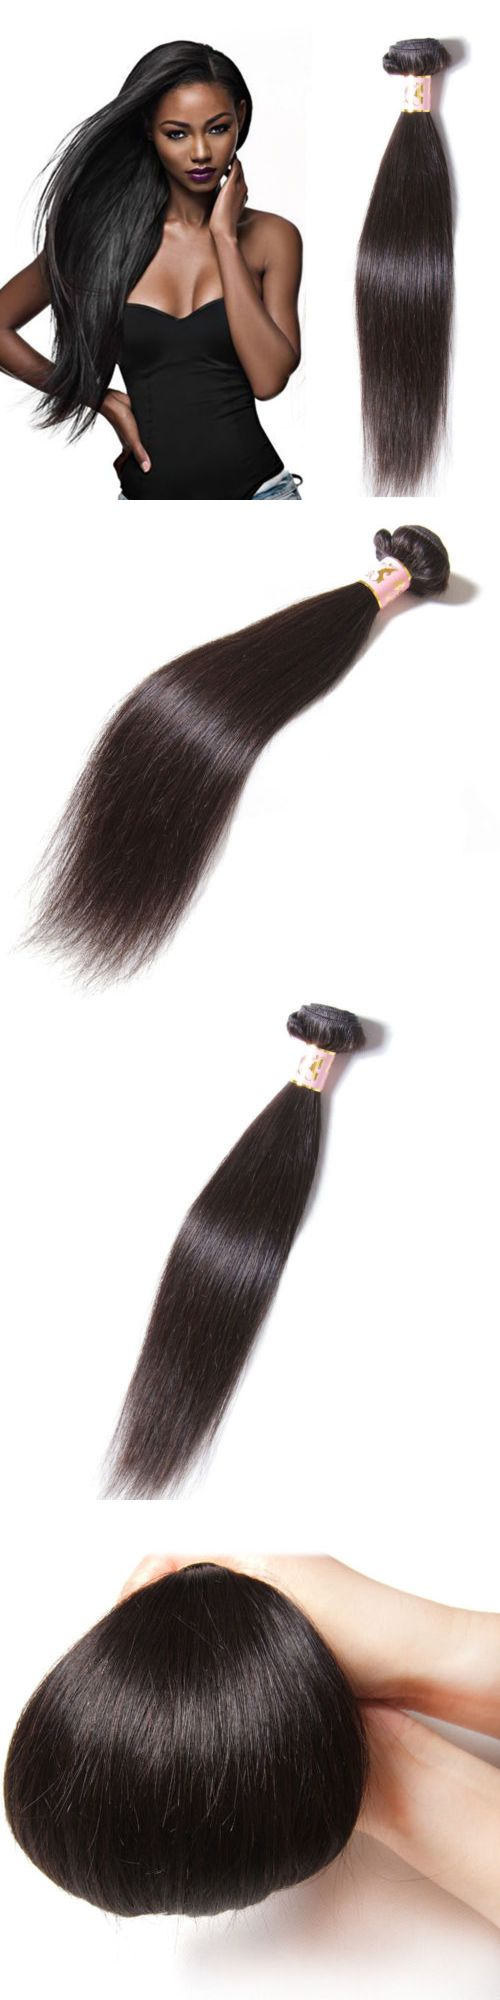 Hair Extensions: 1 Bundle Thick 7A Straight Malaysia Virgin Human Hair Weave Hair Extension 100G -> BUY IT NOW ONLY: $30.99 on eBay!